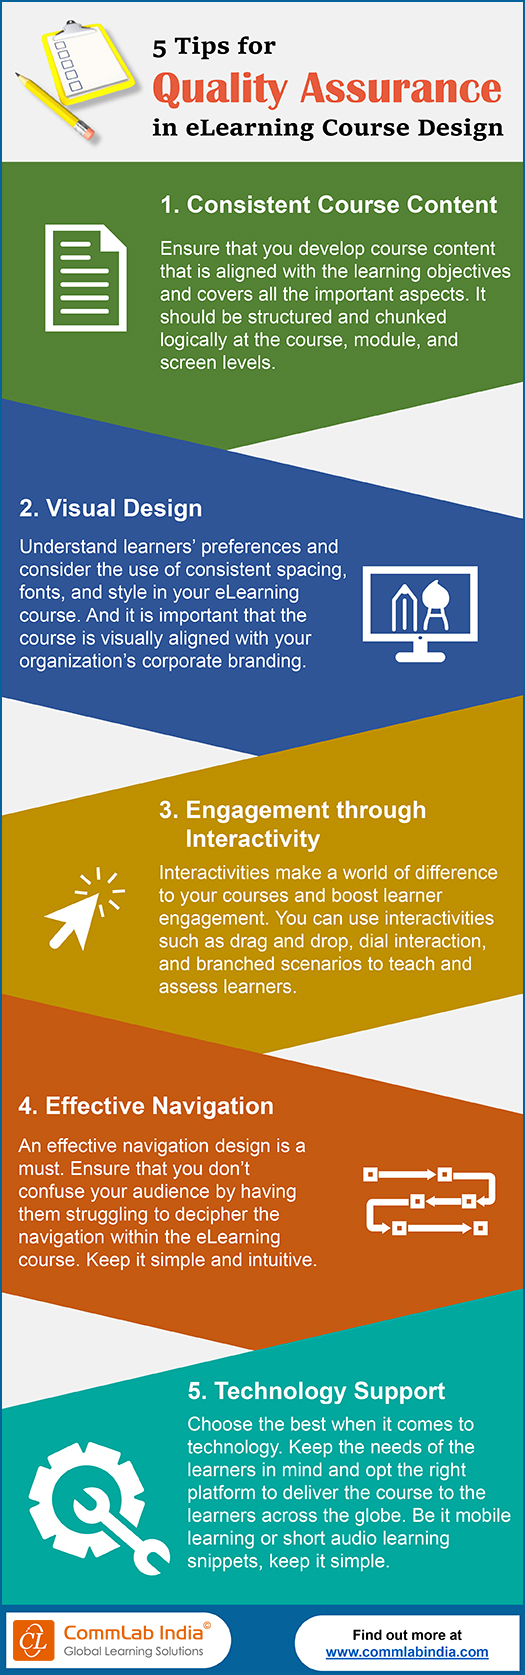 5 Tips for Quality Assurance in eLearning Course Design [Infographic]